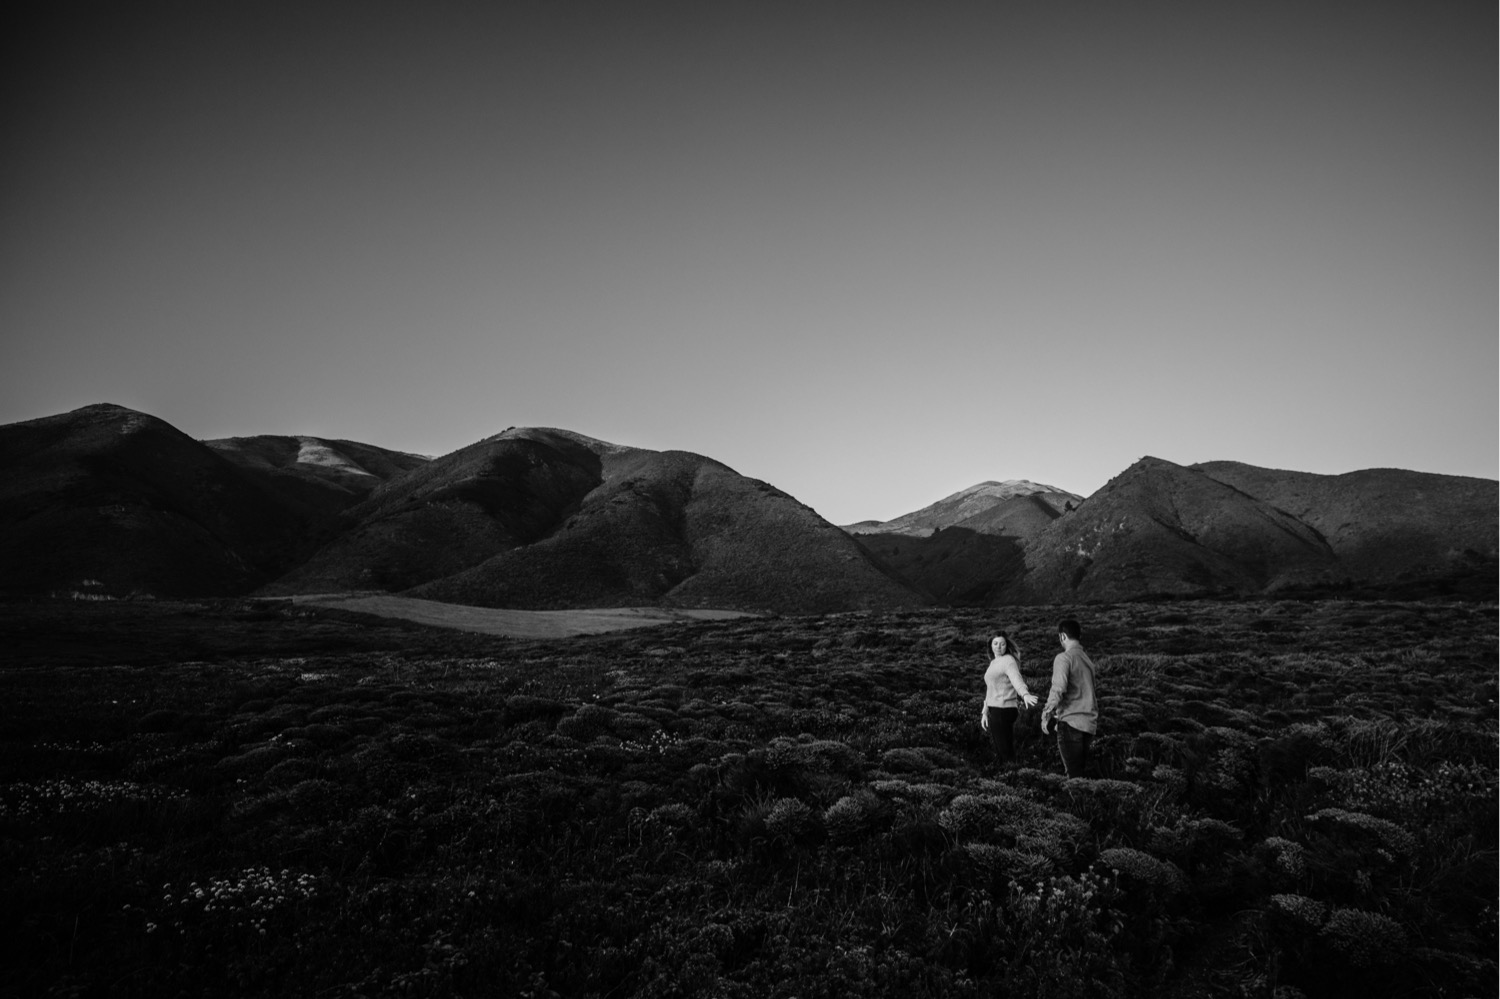 A black and white photo of a woman leading her fiance down a Big Sur hiking trail by hand during their engagement photoshoot in Big Sur, California.